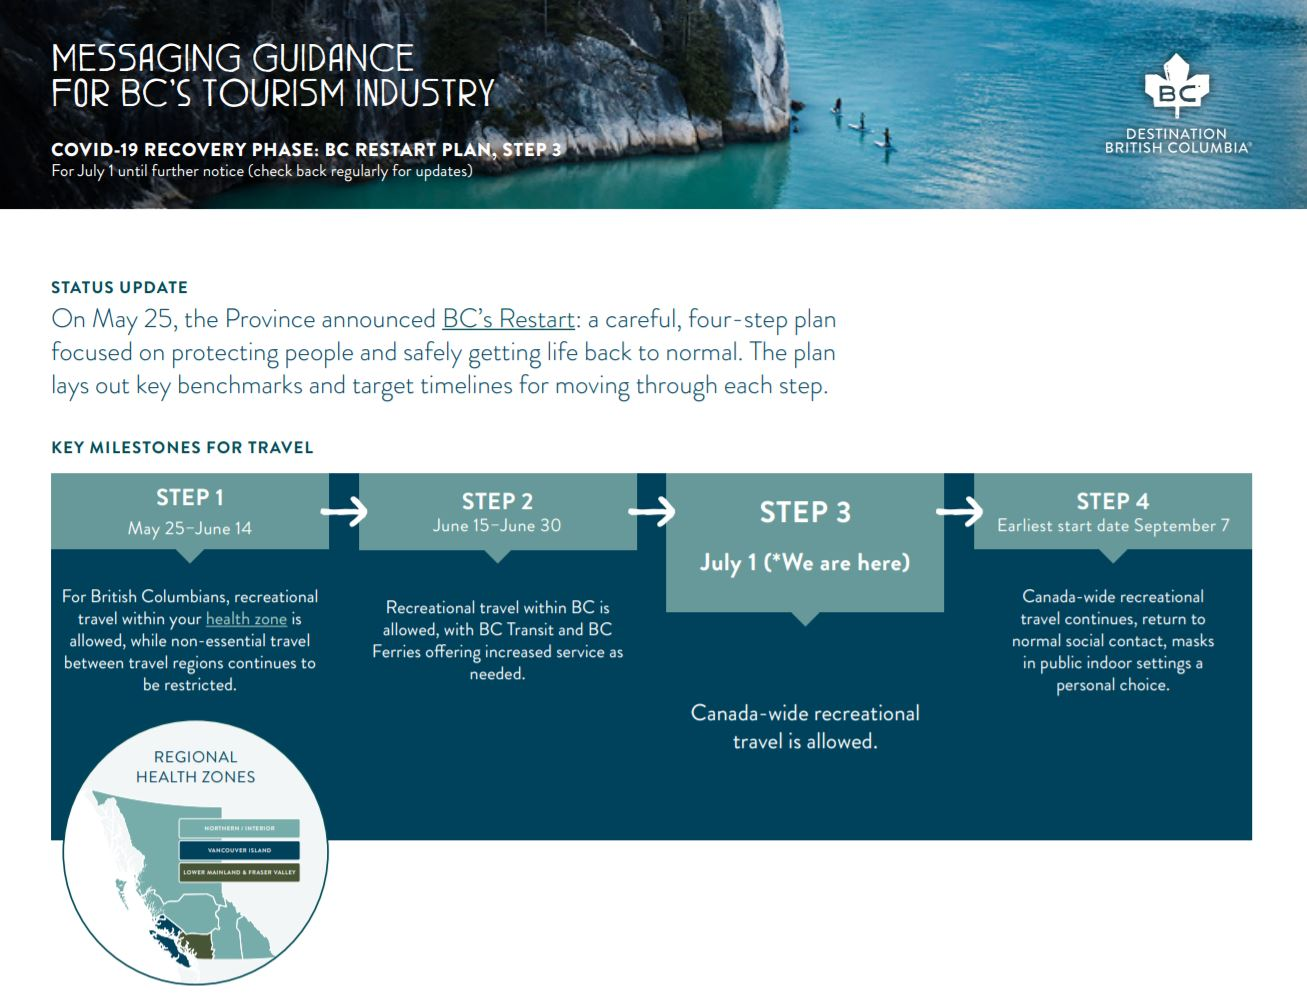 Step 3 Messaging Guidance for BC's Tourism Industry